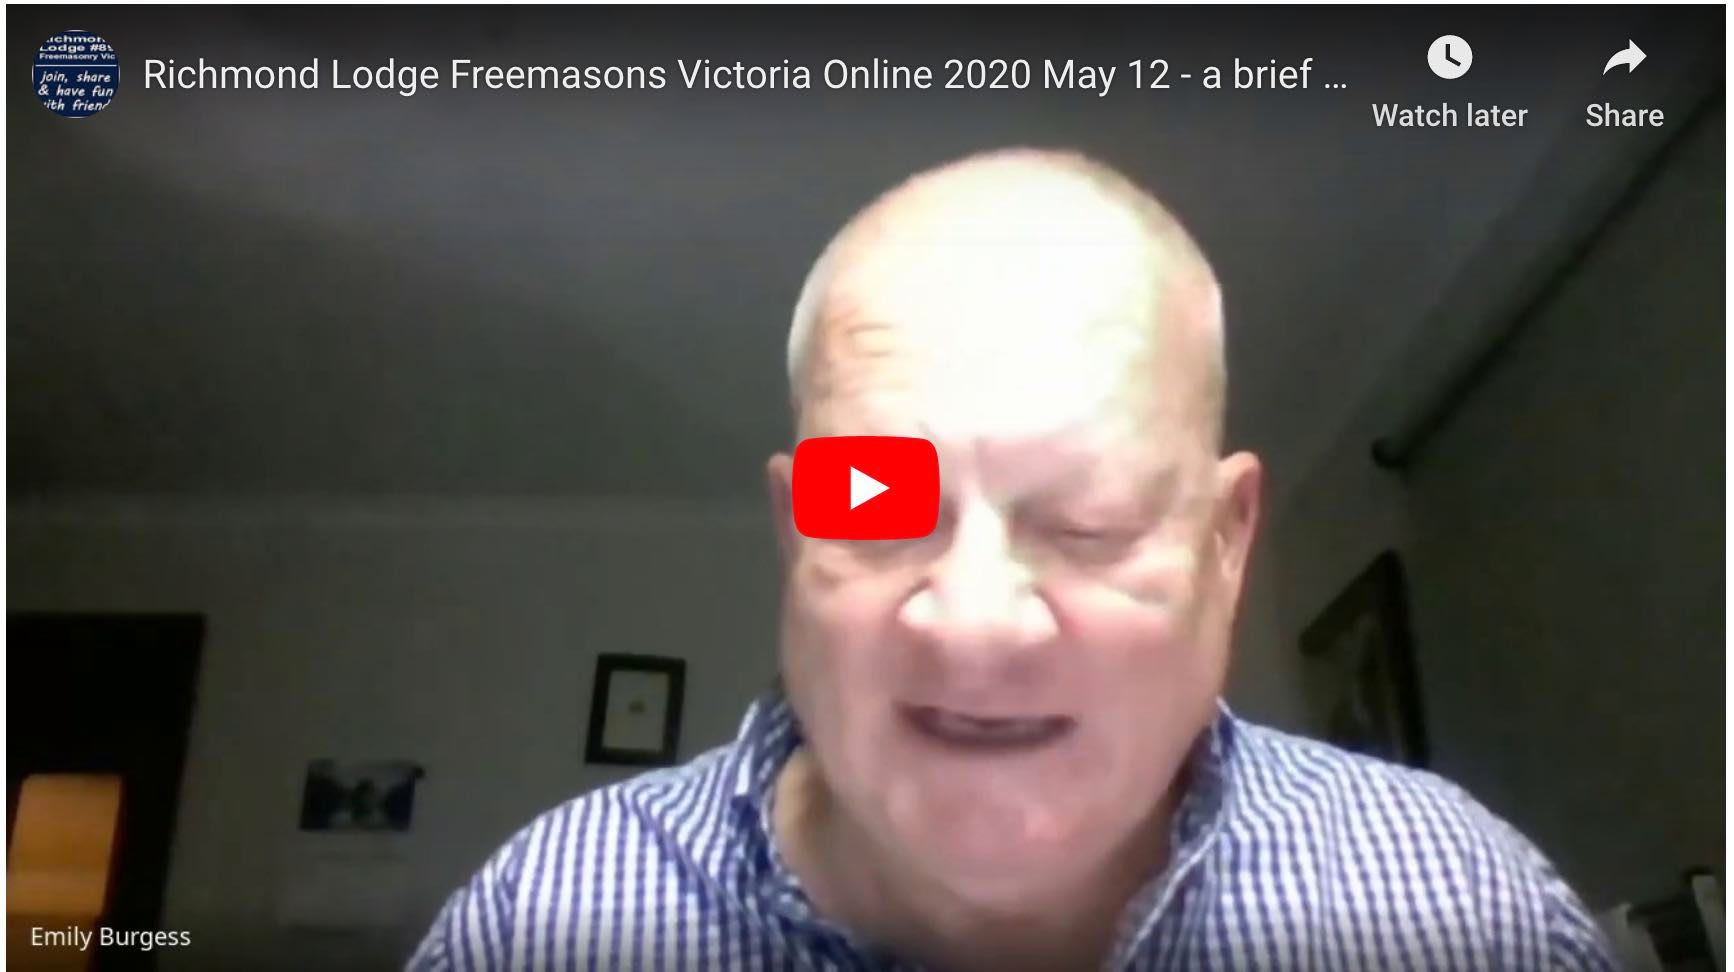 Richmond Lodge Freemasons Victoria Online 2020 May 12 - a brief history